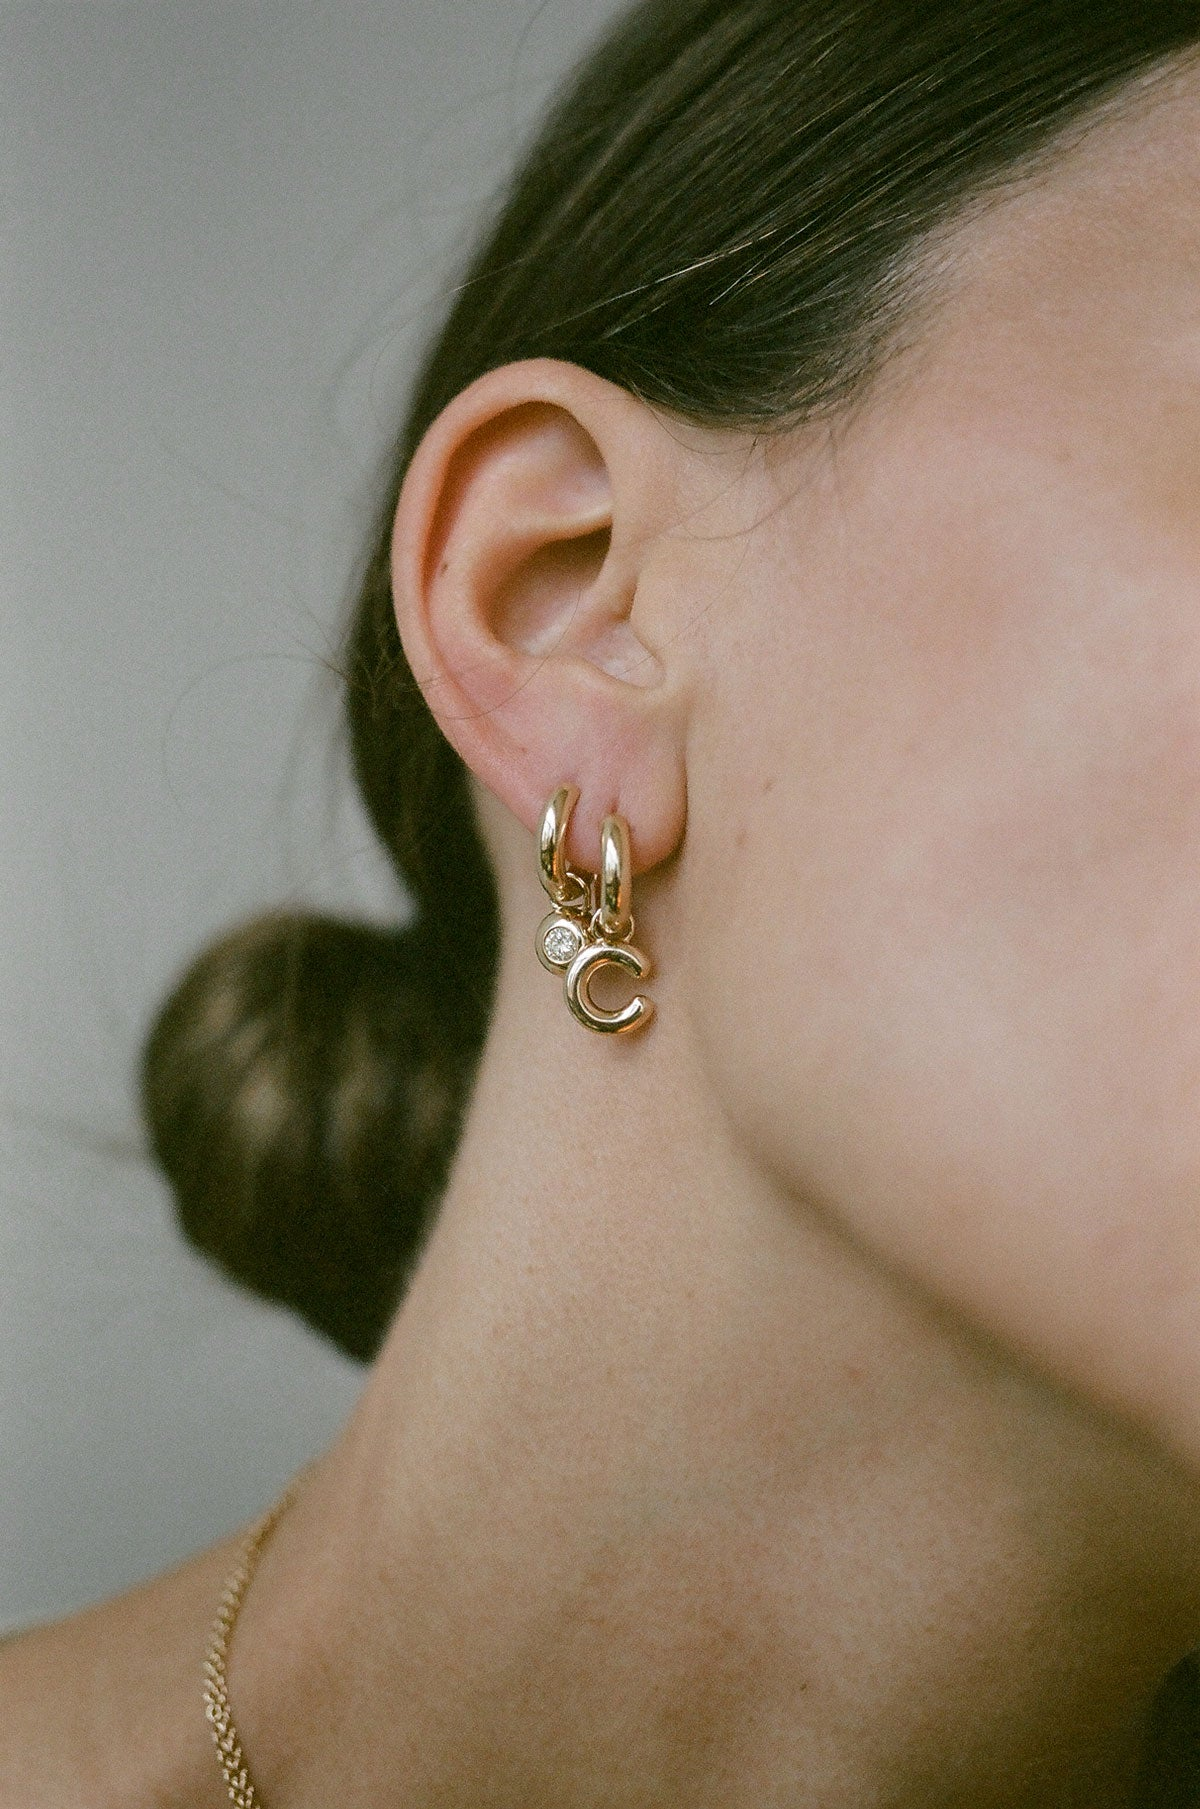 Model wearing J. Hannah Identity Charm Hoop earrings 14k gold